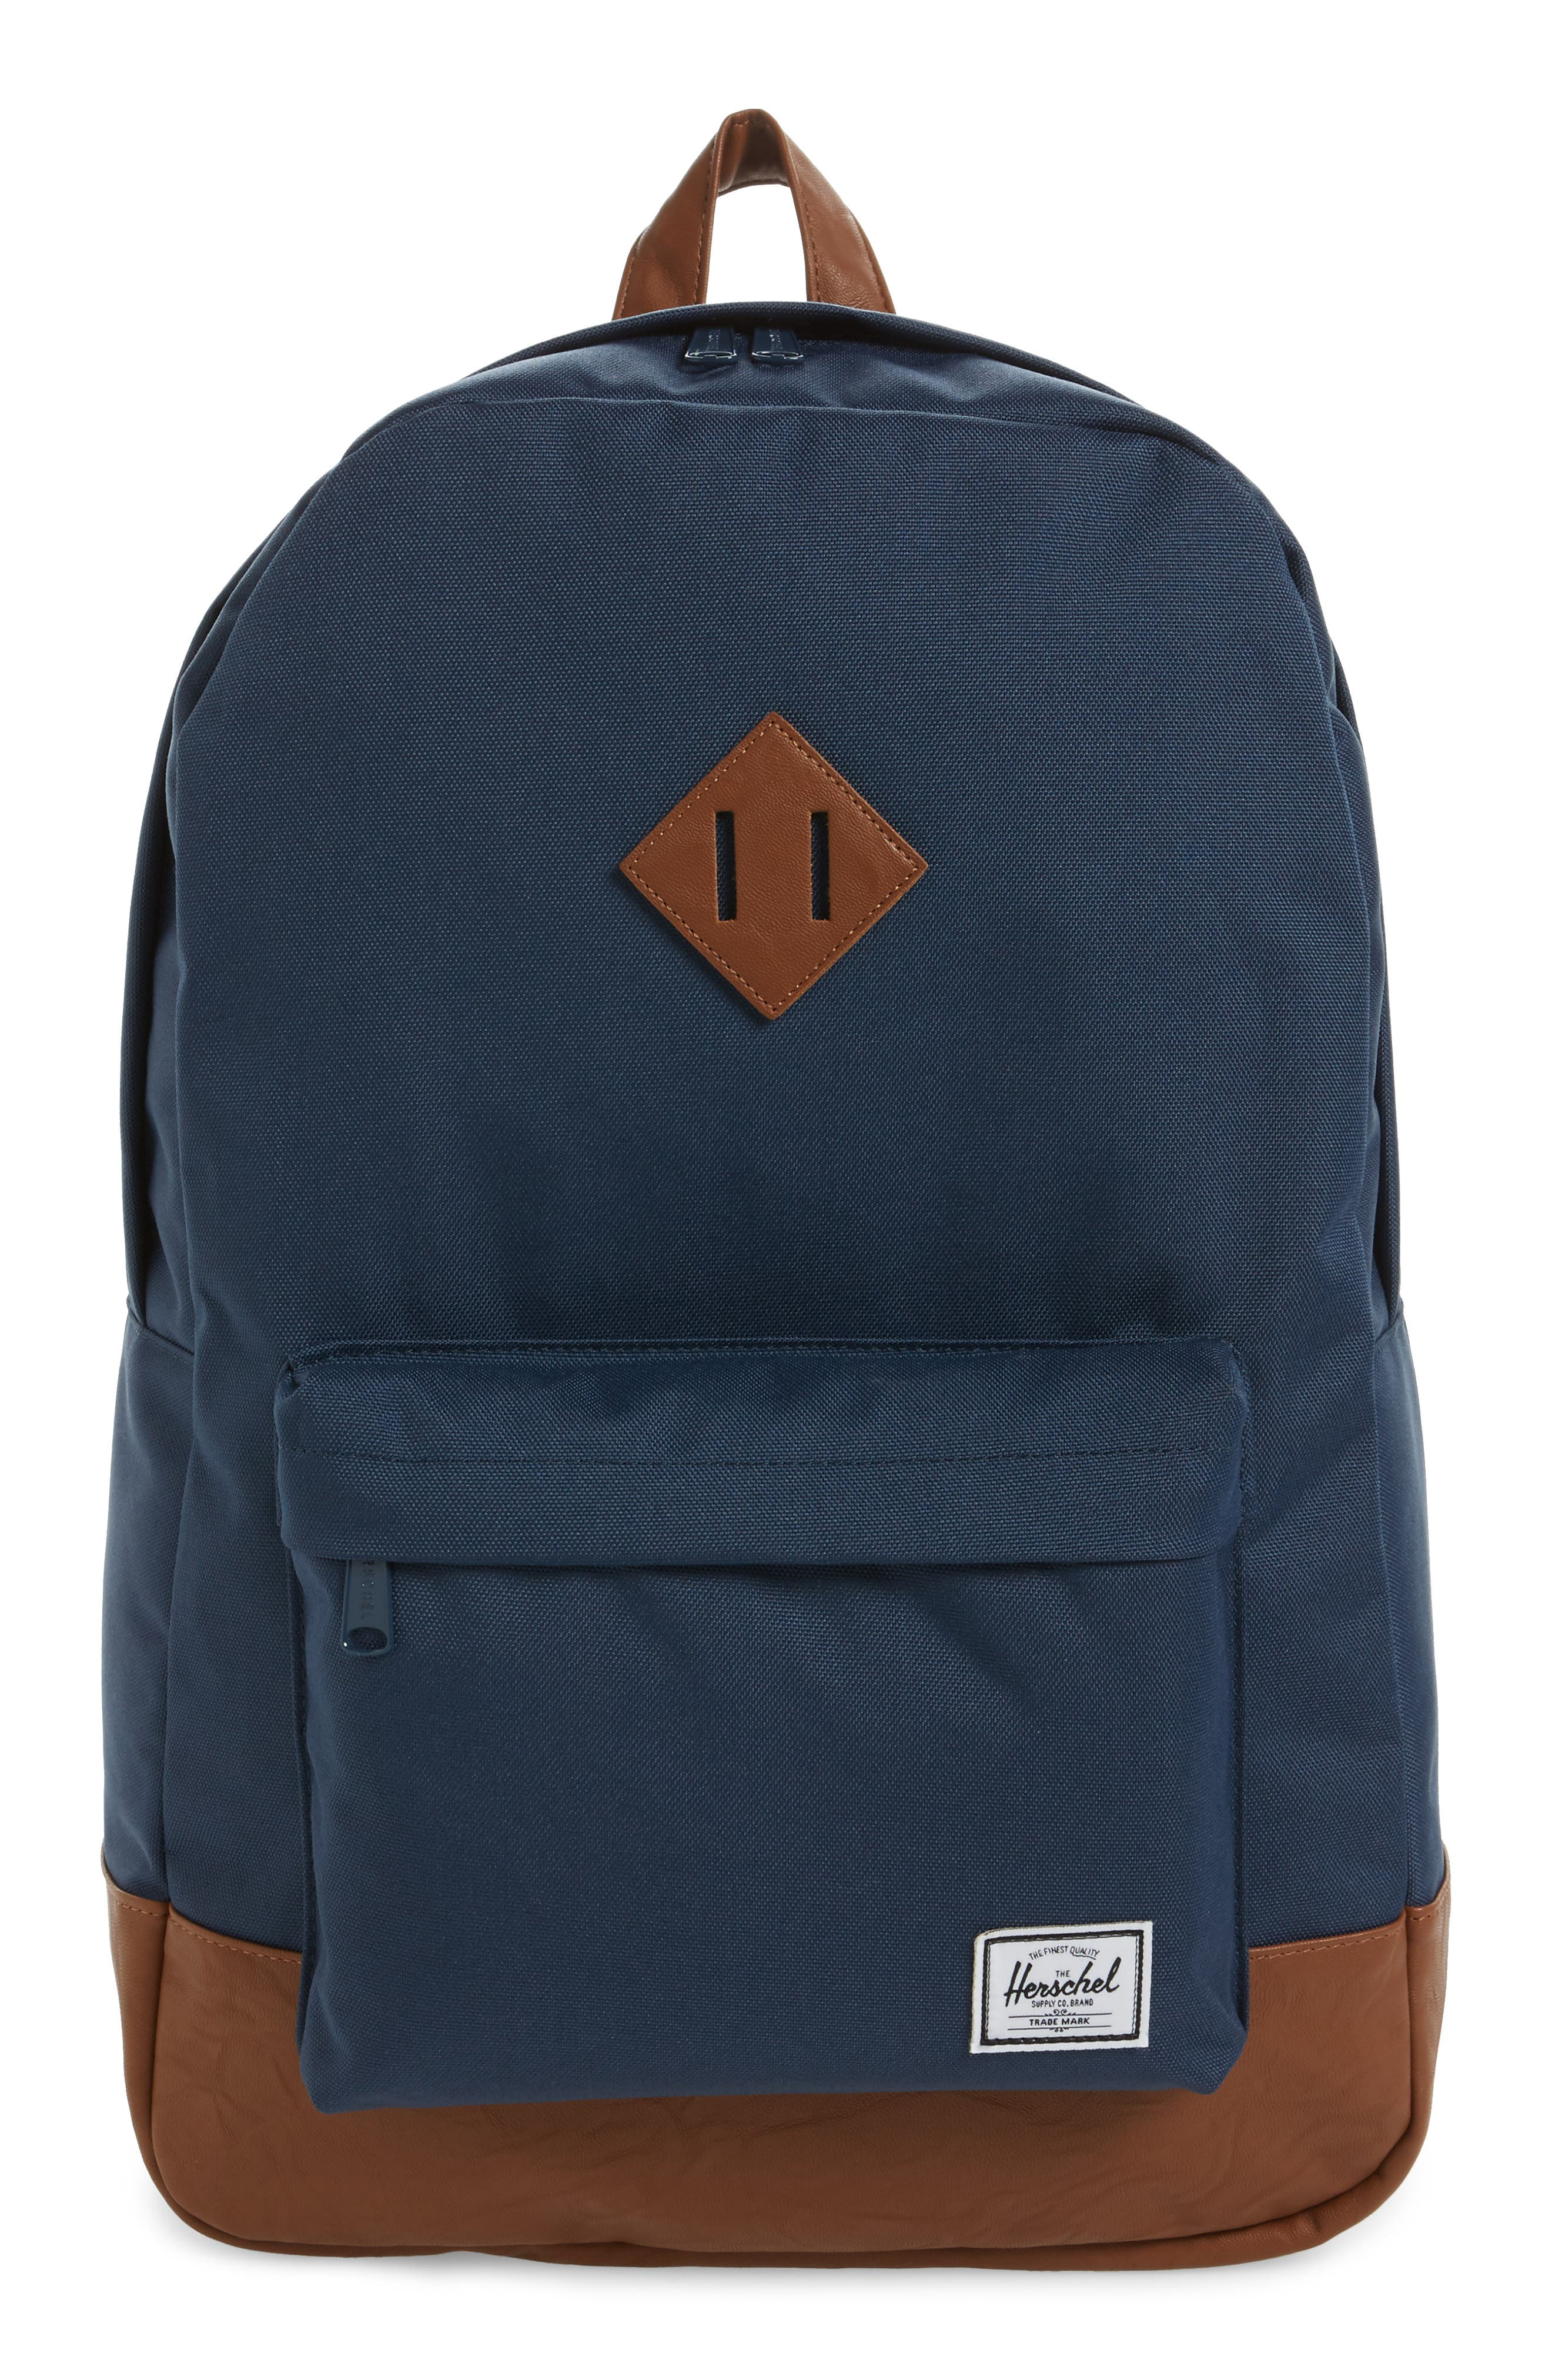 Herschel Supply Co. Heritage Backpack - Blue